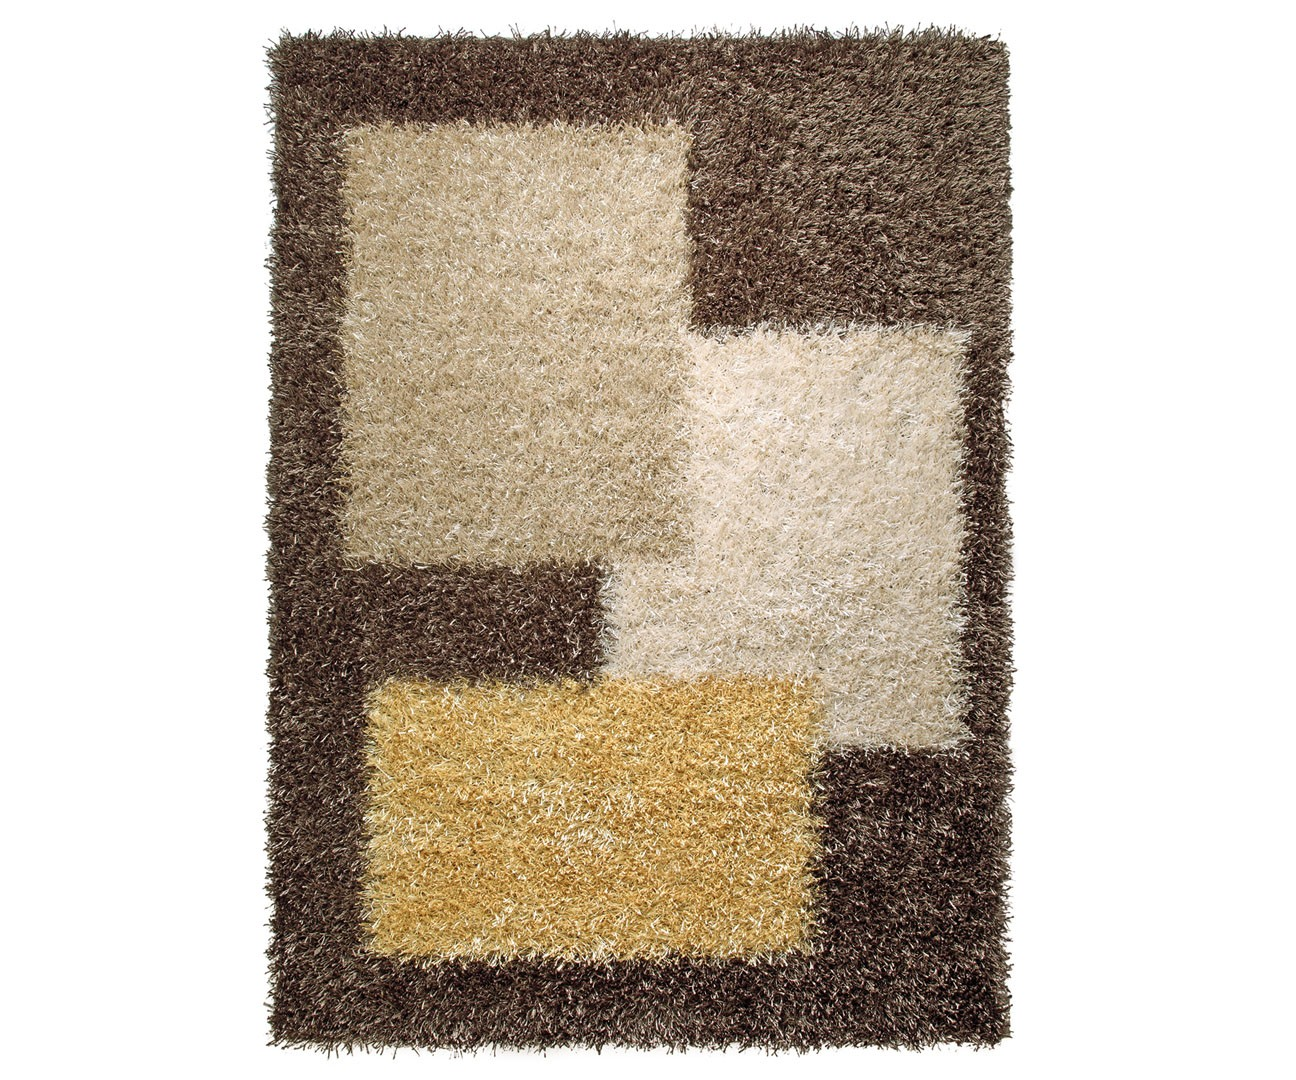 Tapis shaggy marron Cool Glamour I par Esprit Home